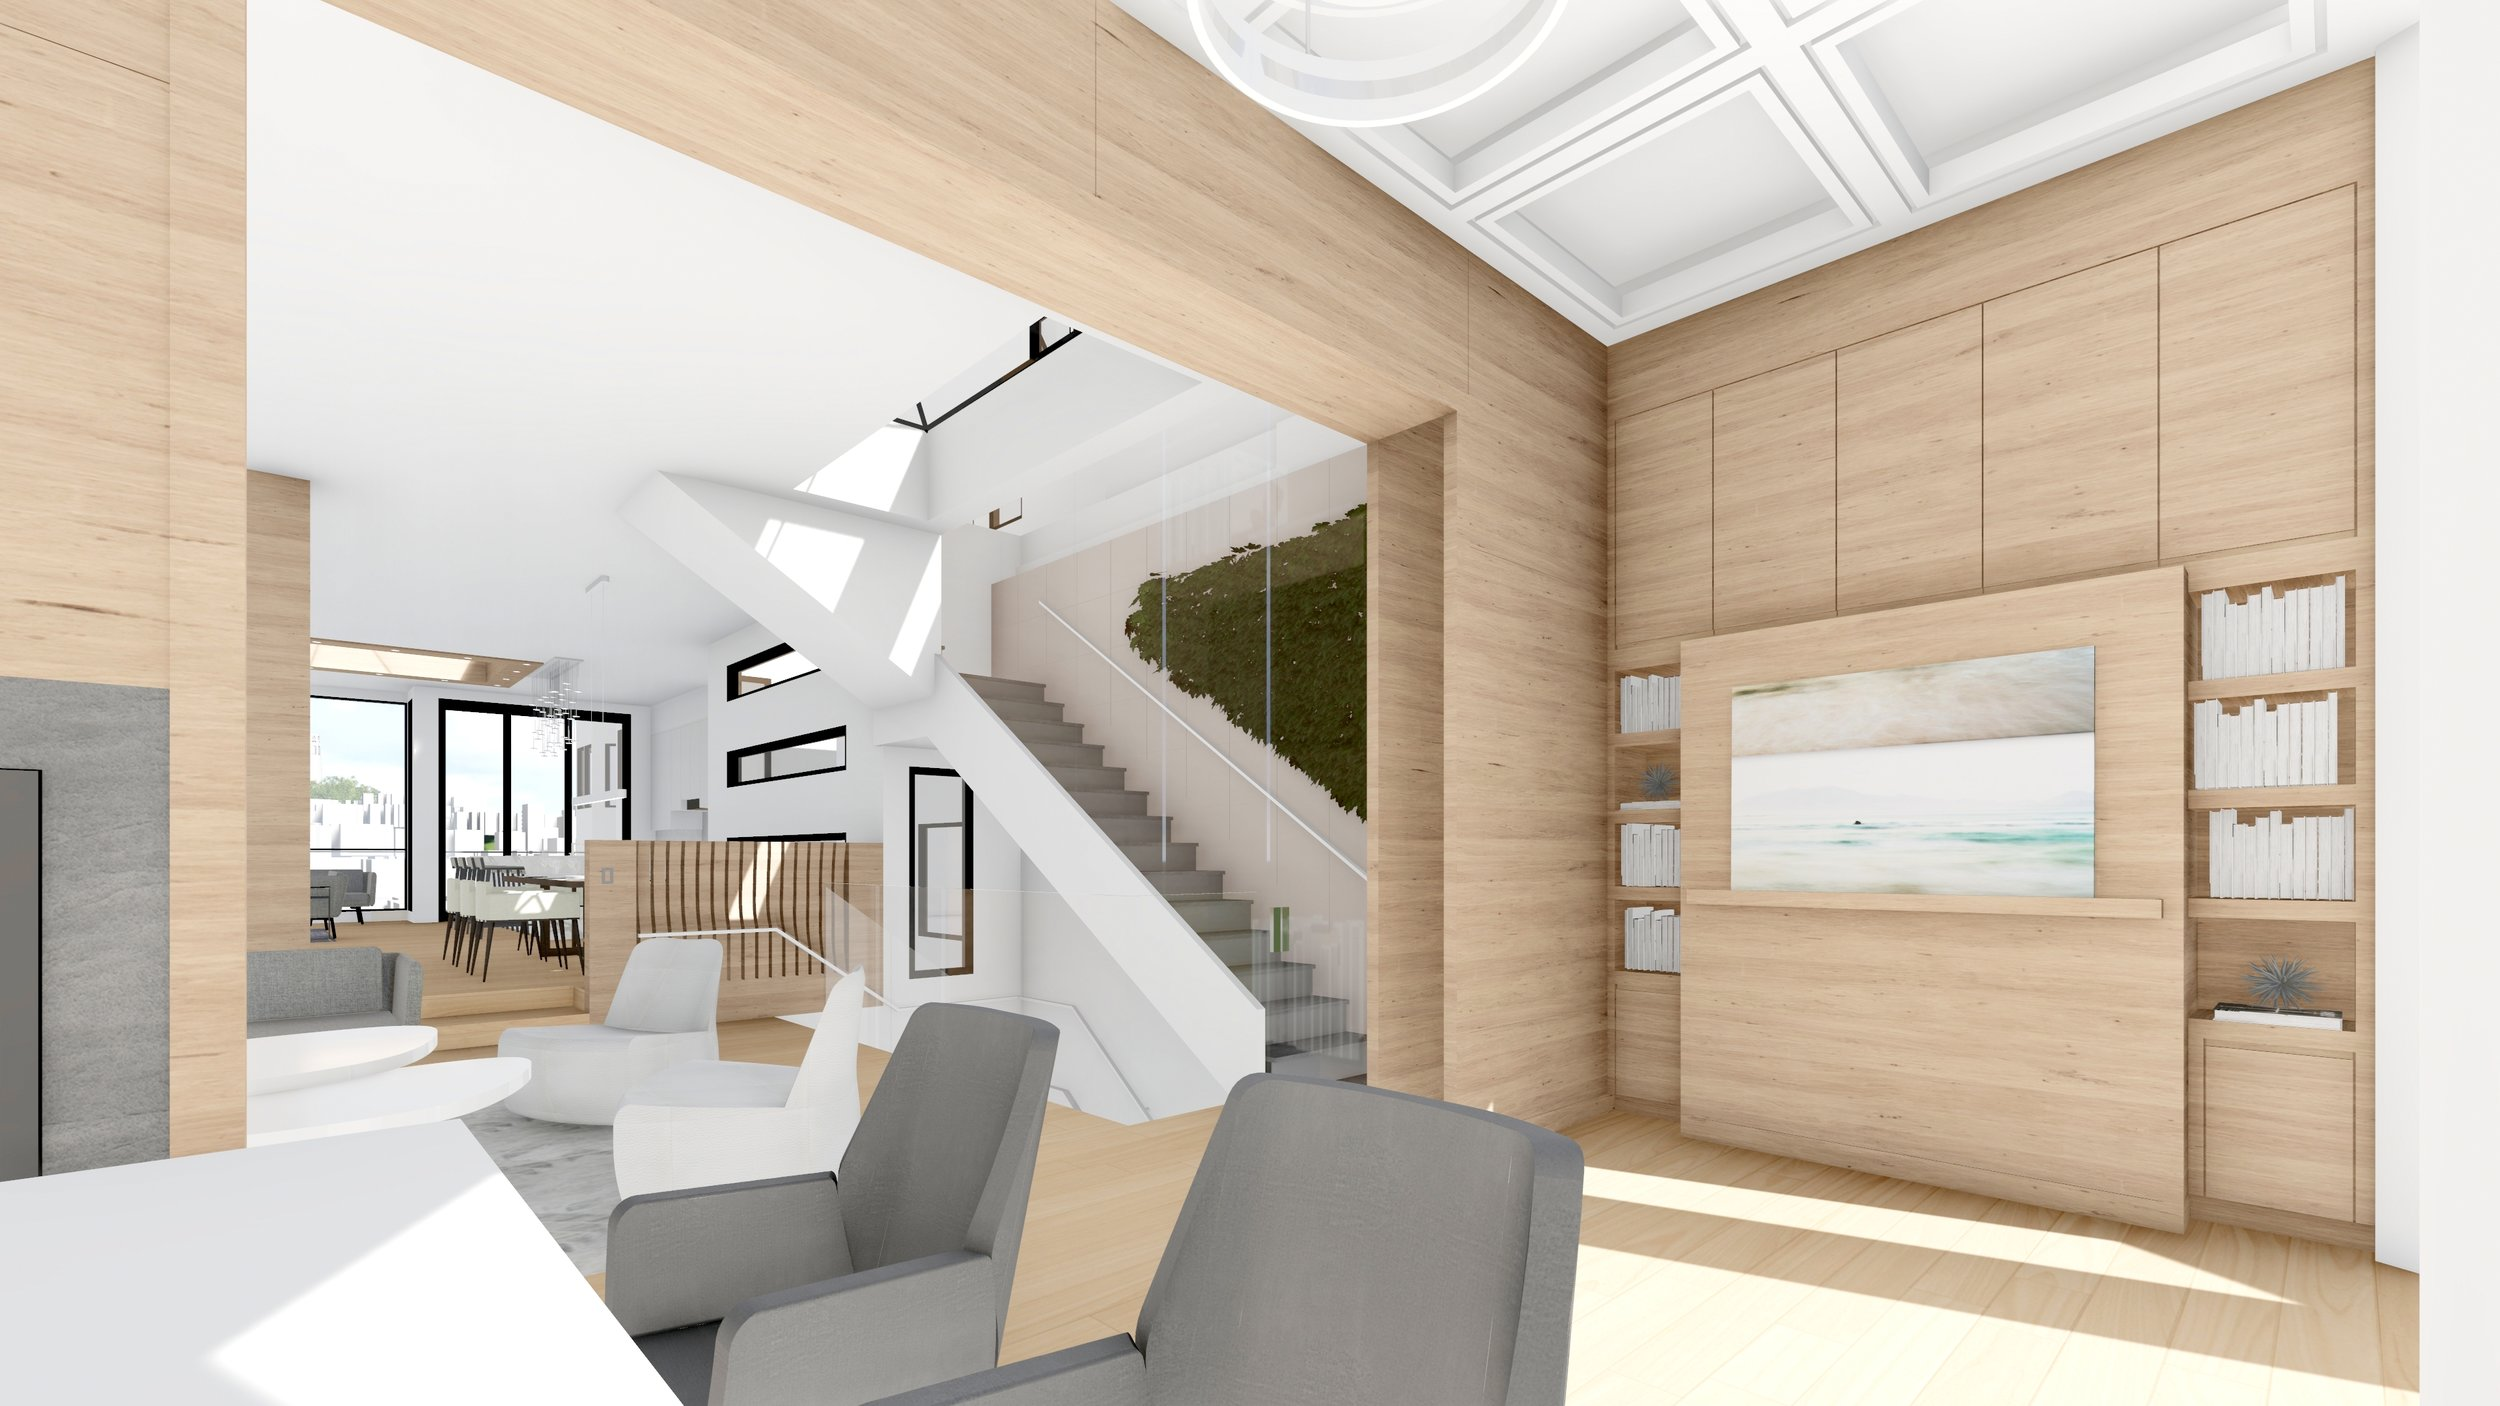 2028-2030 Leavenworth Street - RENDERS - LIBRARY_2_080217.jpg